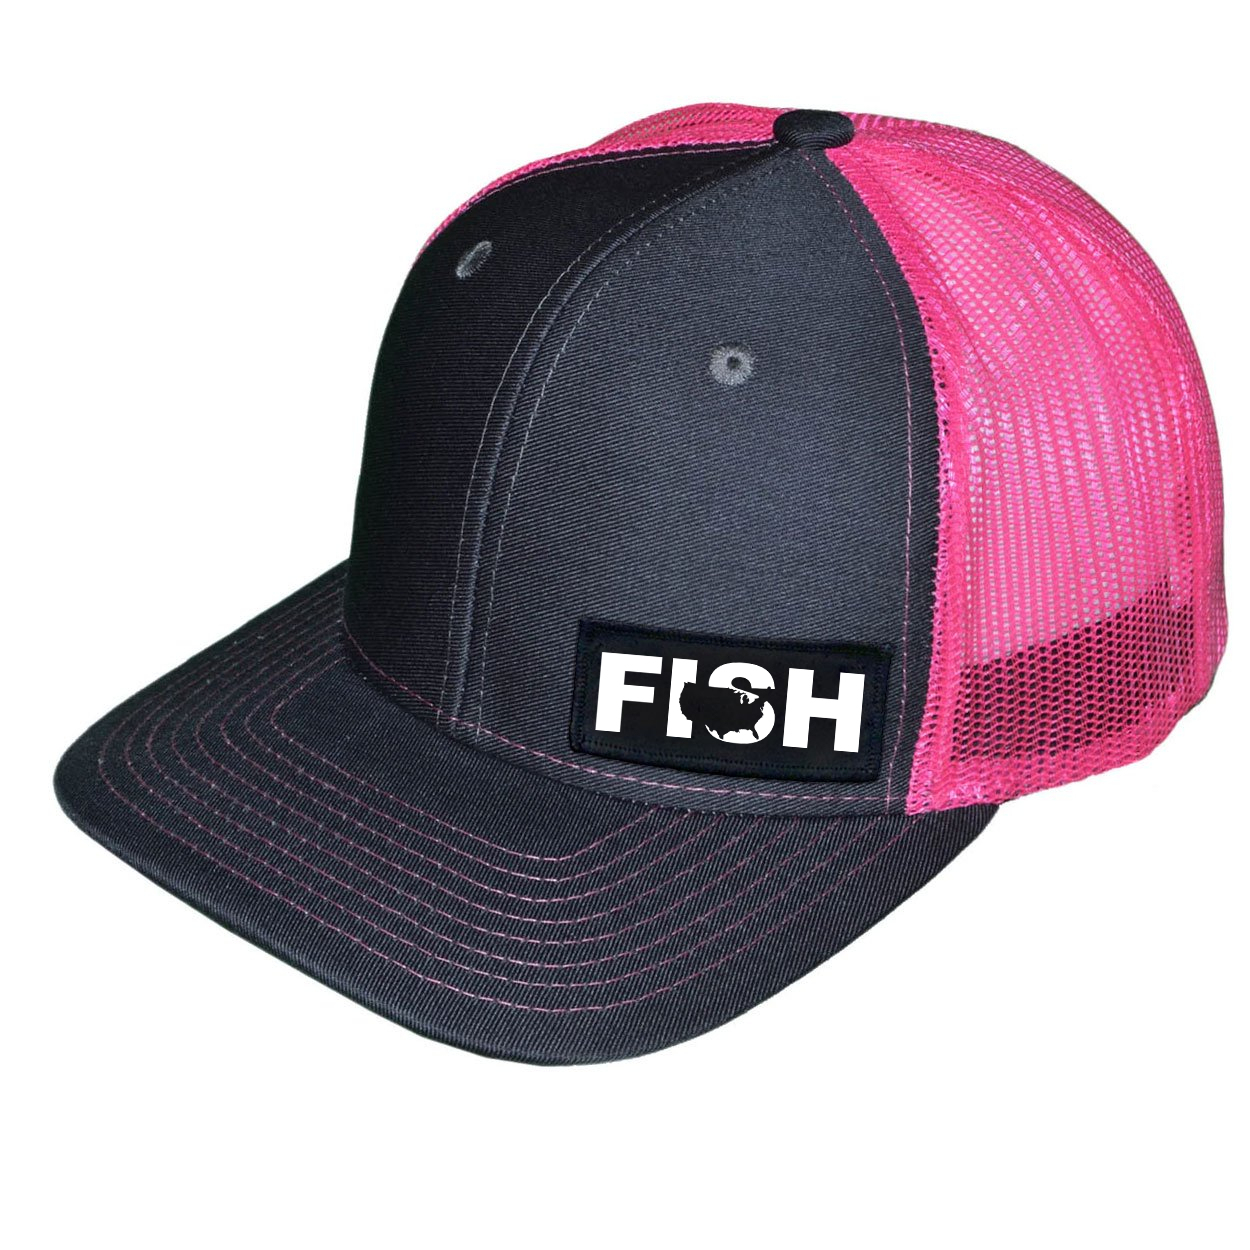 Fish United States Night Out Woven Patch Snapback Trucker Hat Dark Gray/Neon Pink (White Logo)